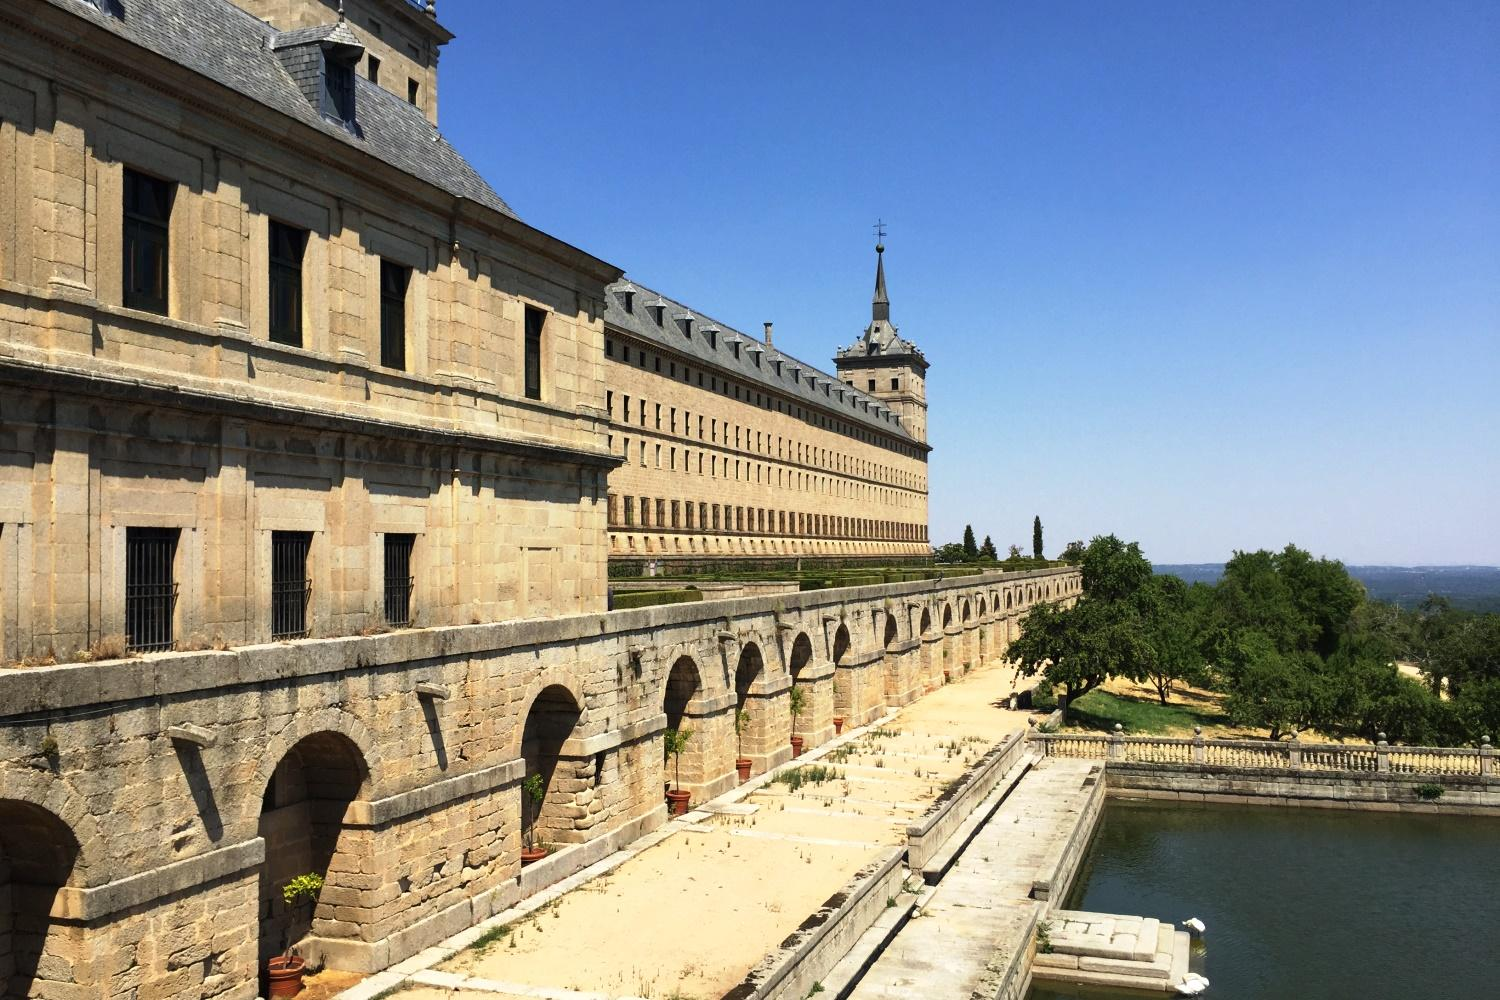 Tour to El escorial with wine tasting and tapas